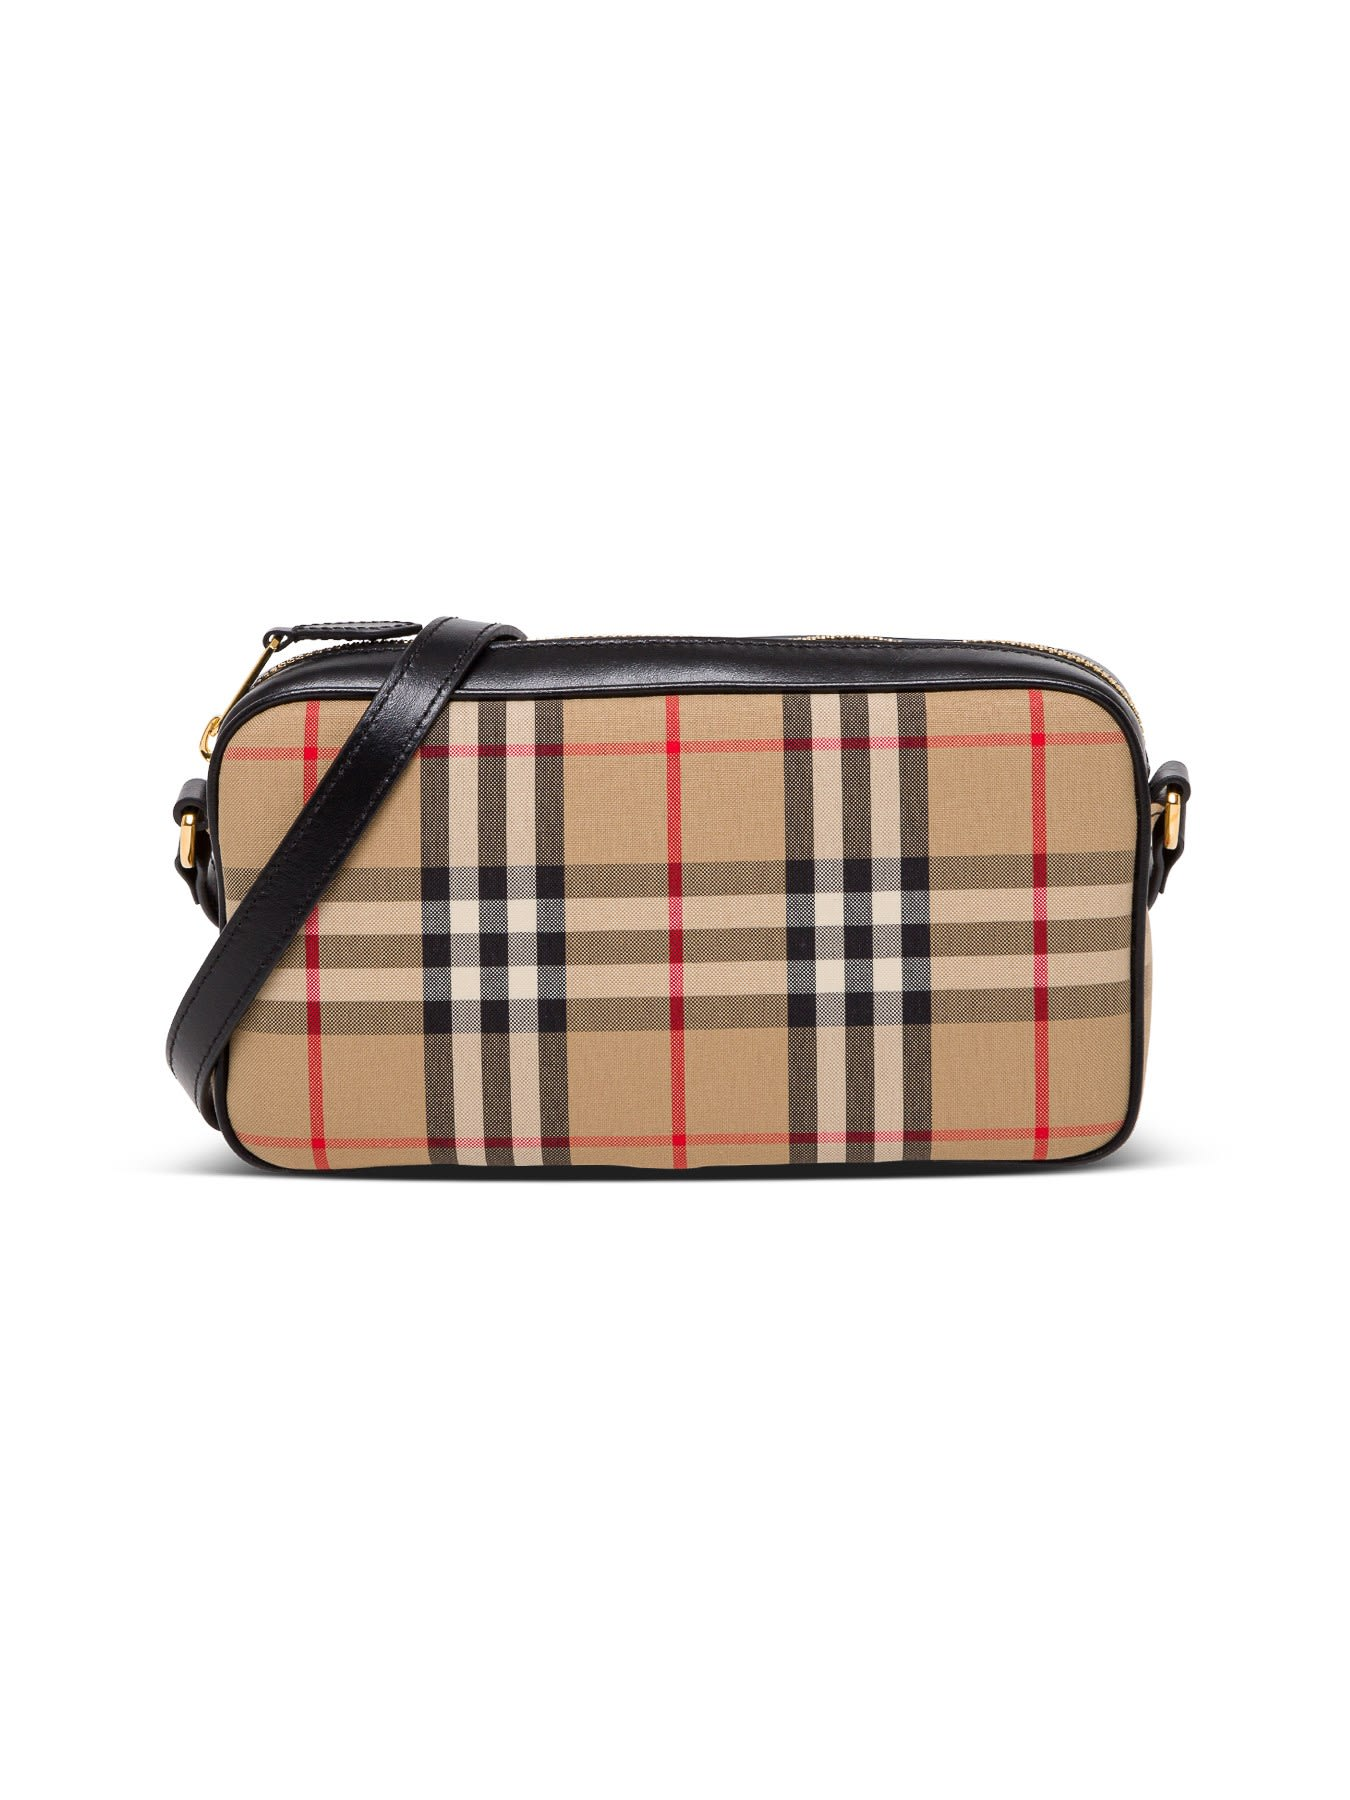 Burberry CROSSBODY BAG IN VINTAGE CHECK FABRIC